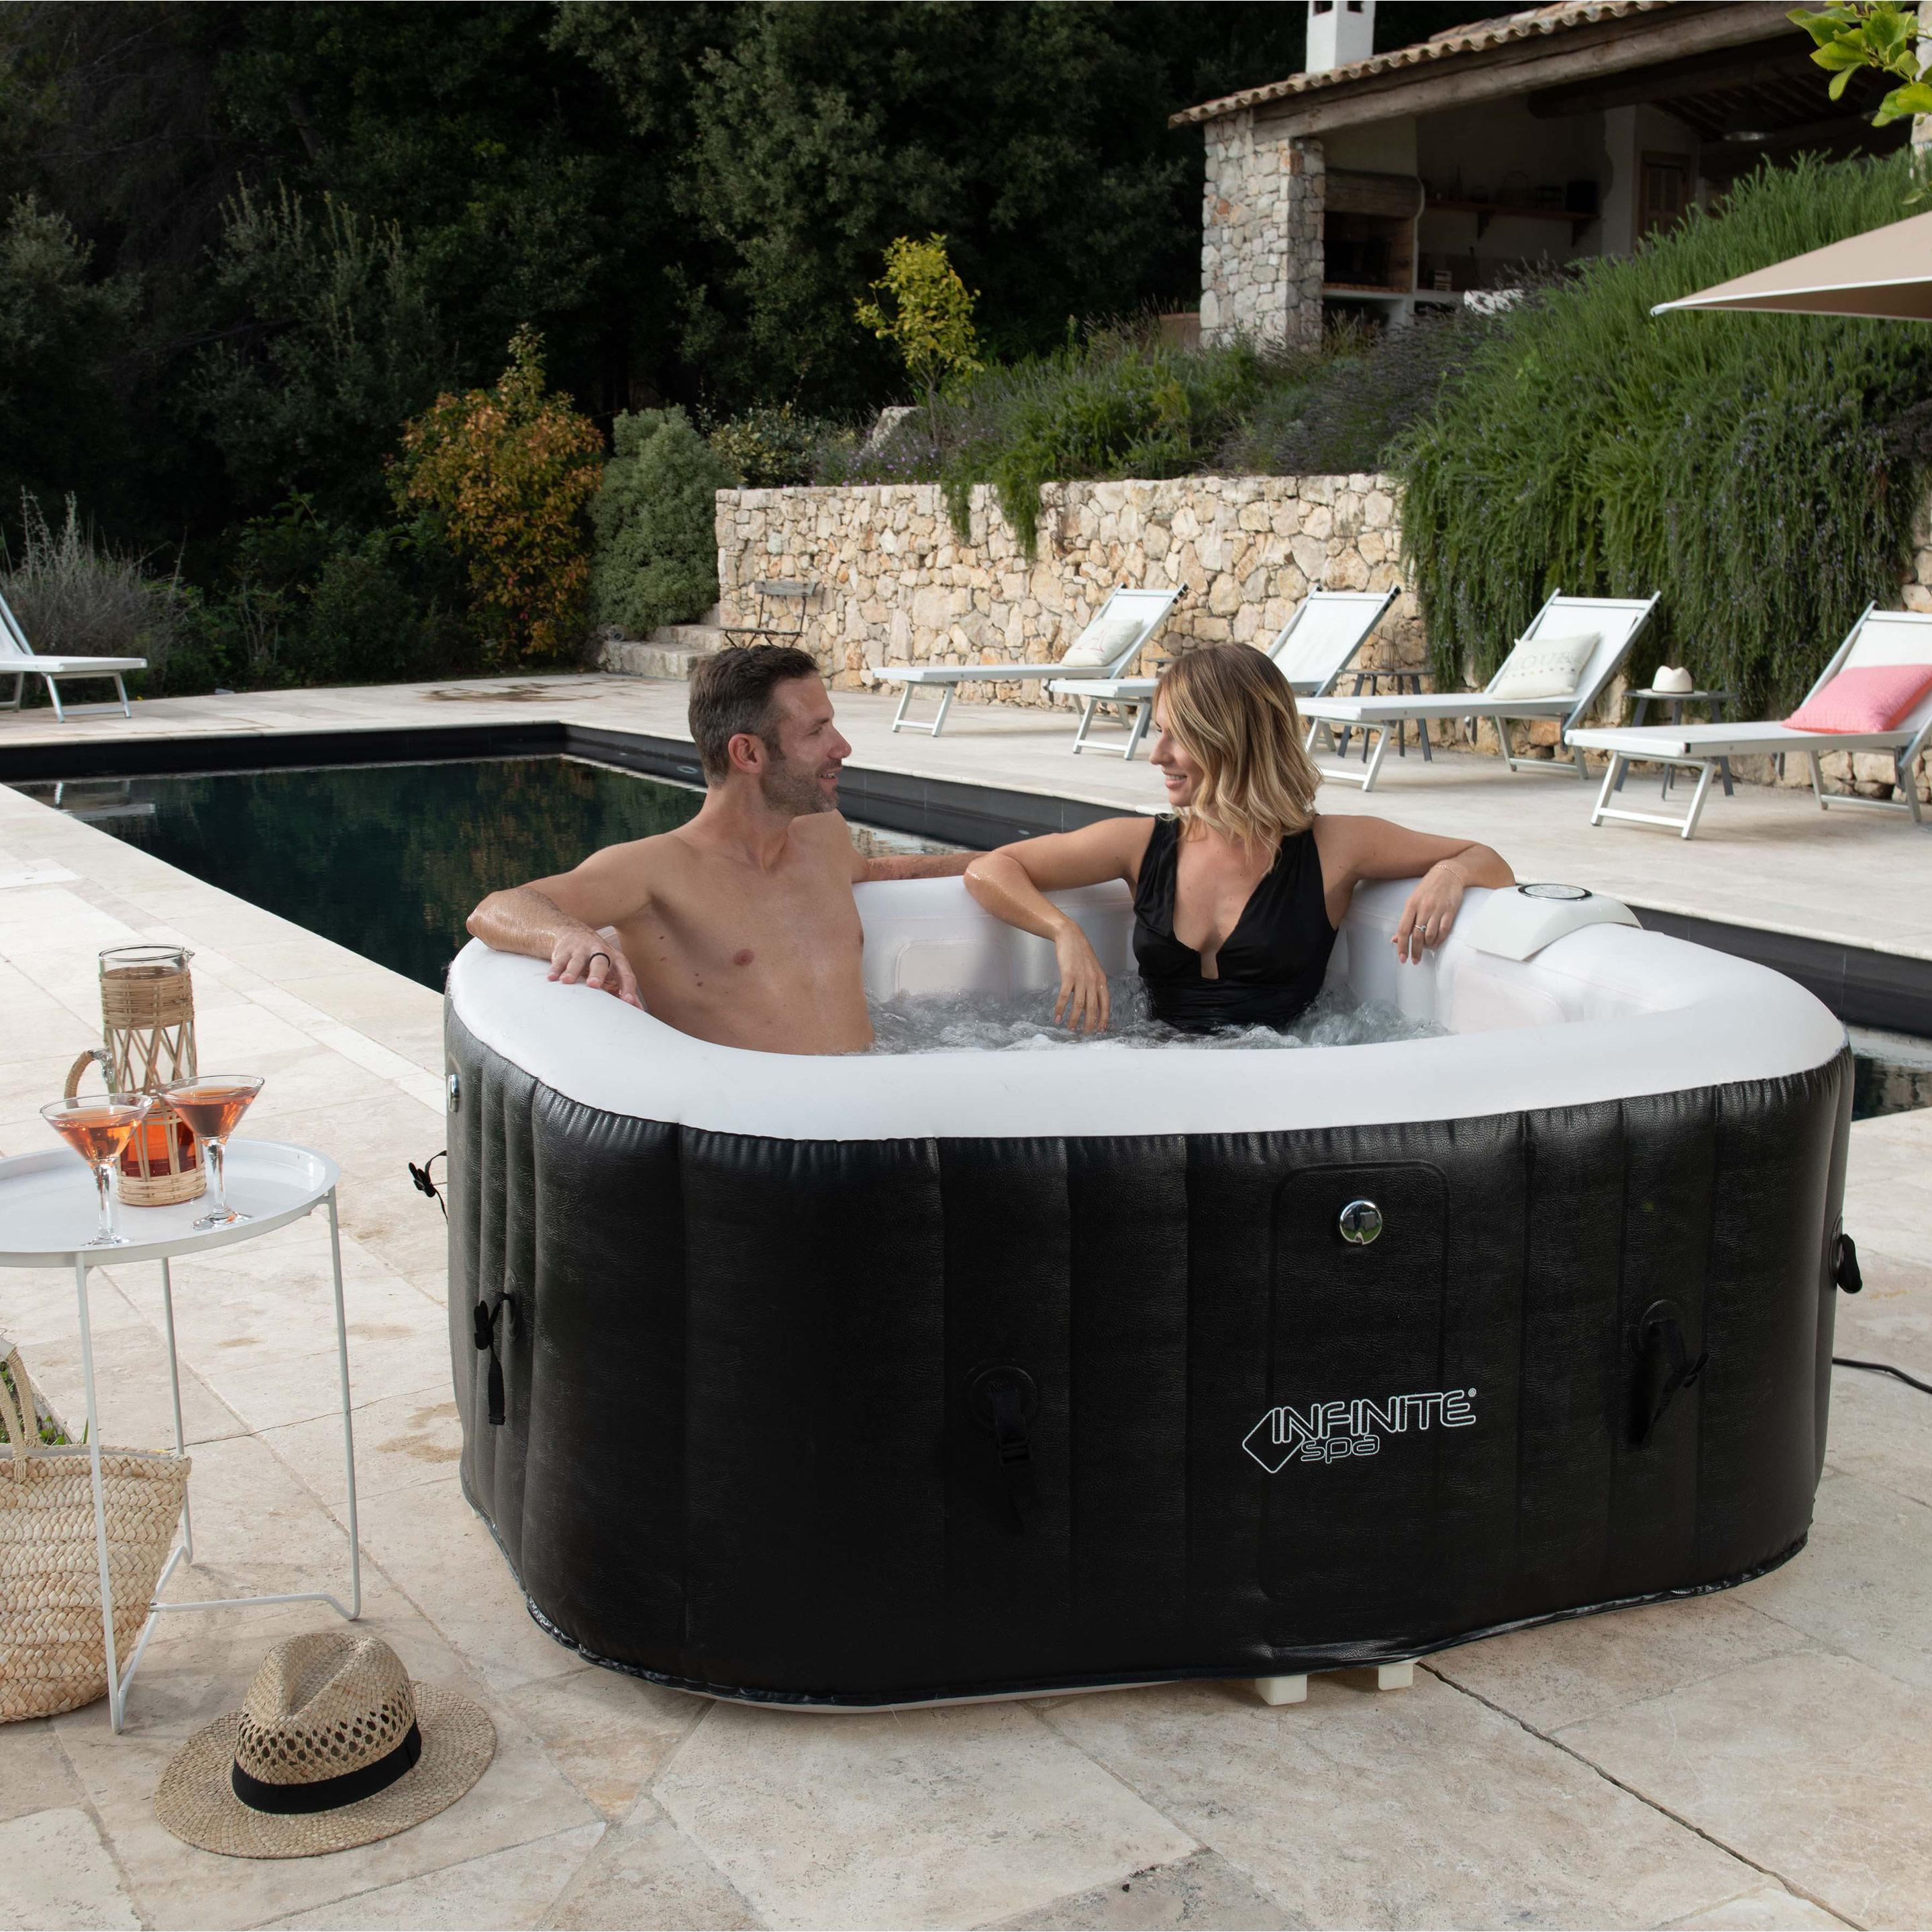 Spa Gonflable Ubbink Power Infinite Carre 4 Places Assises